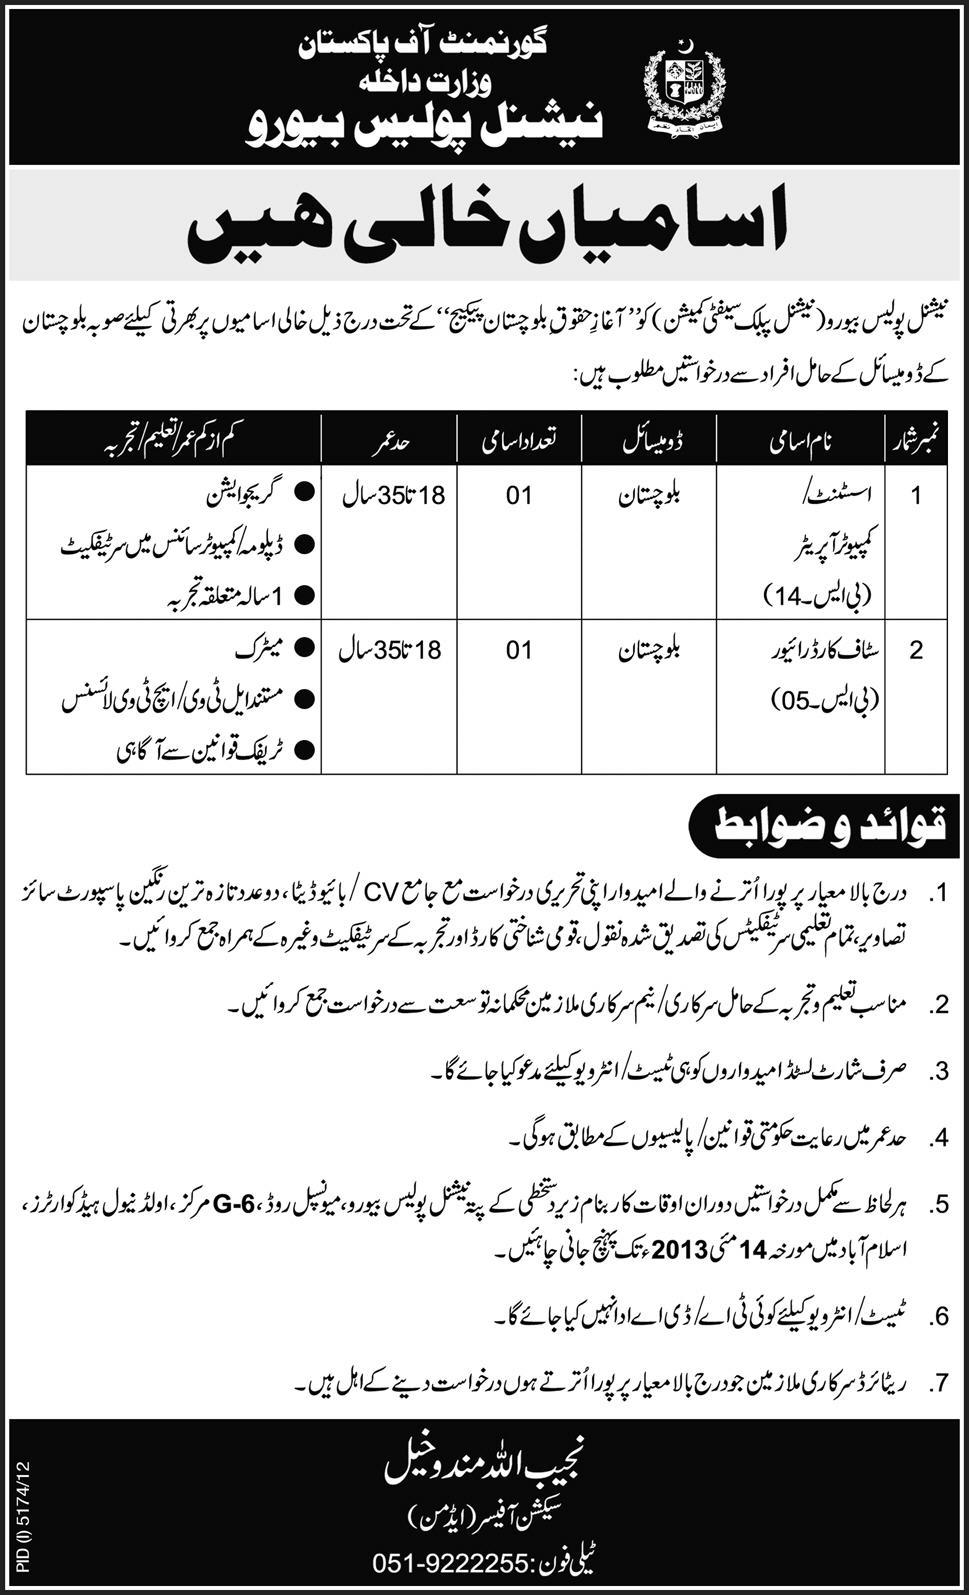 National Police Bureau Govt of Pakistan, Balochistan Jobs